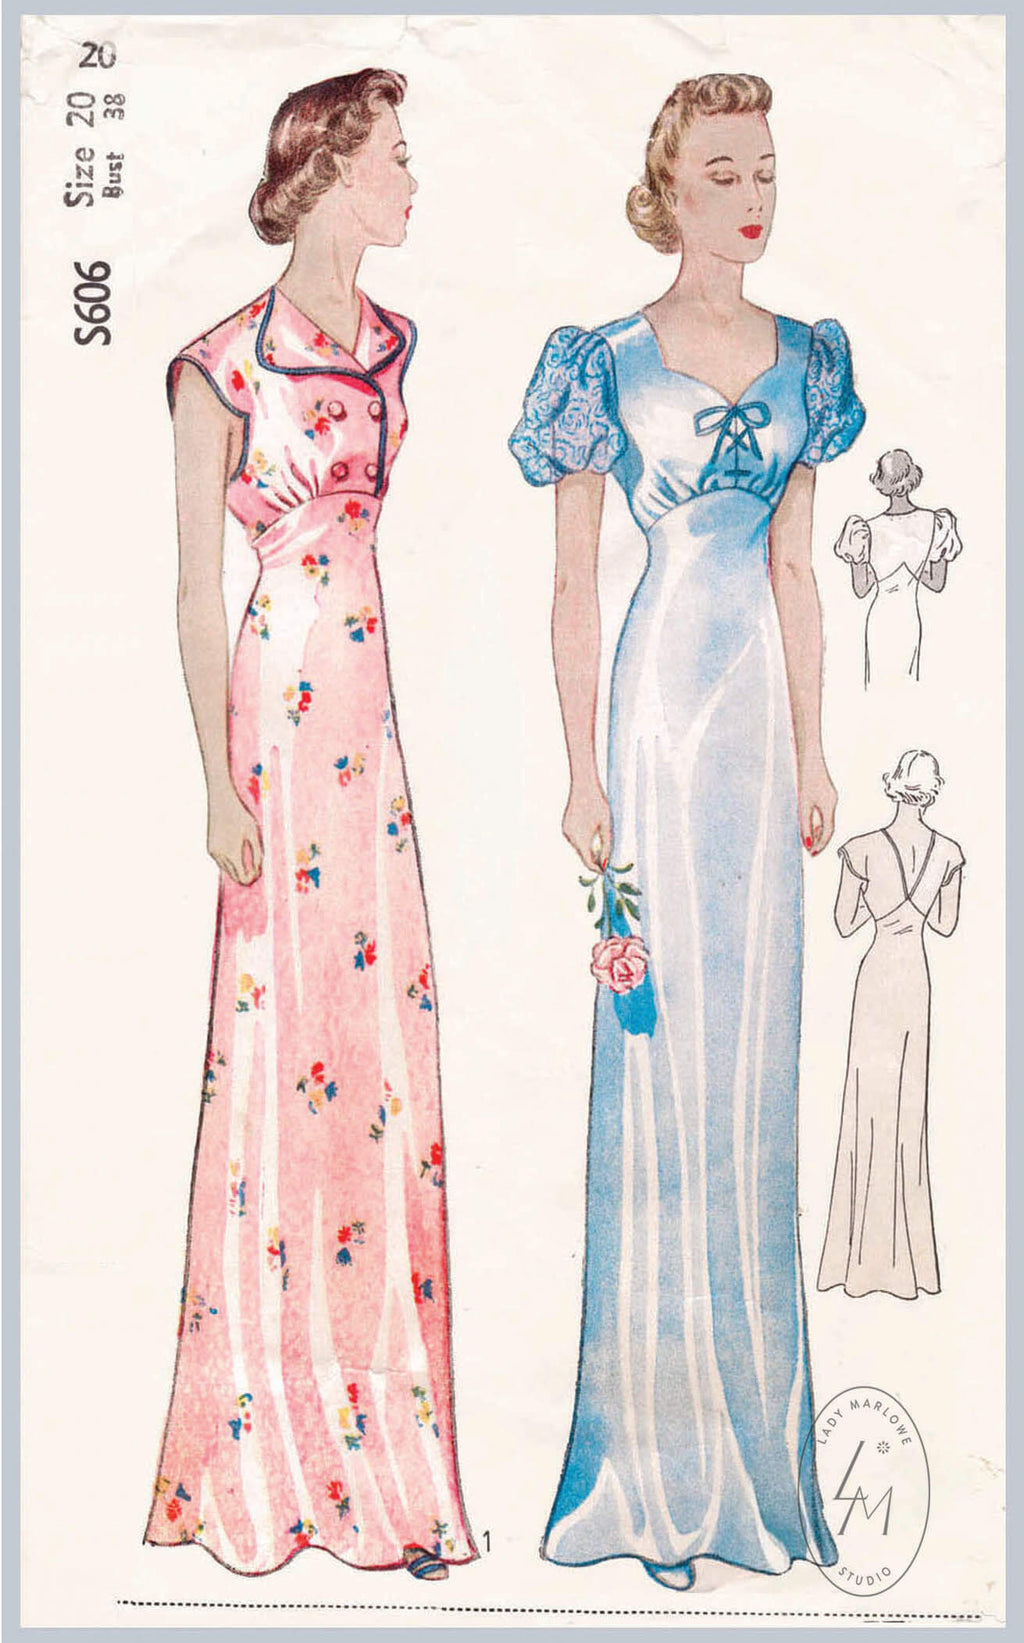 Simplicity S606 1930s negligee evening gown vintage lingerie sewing pattern